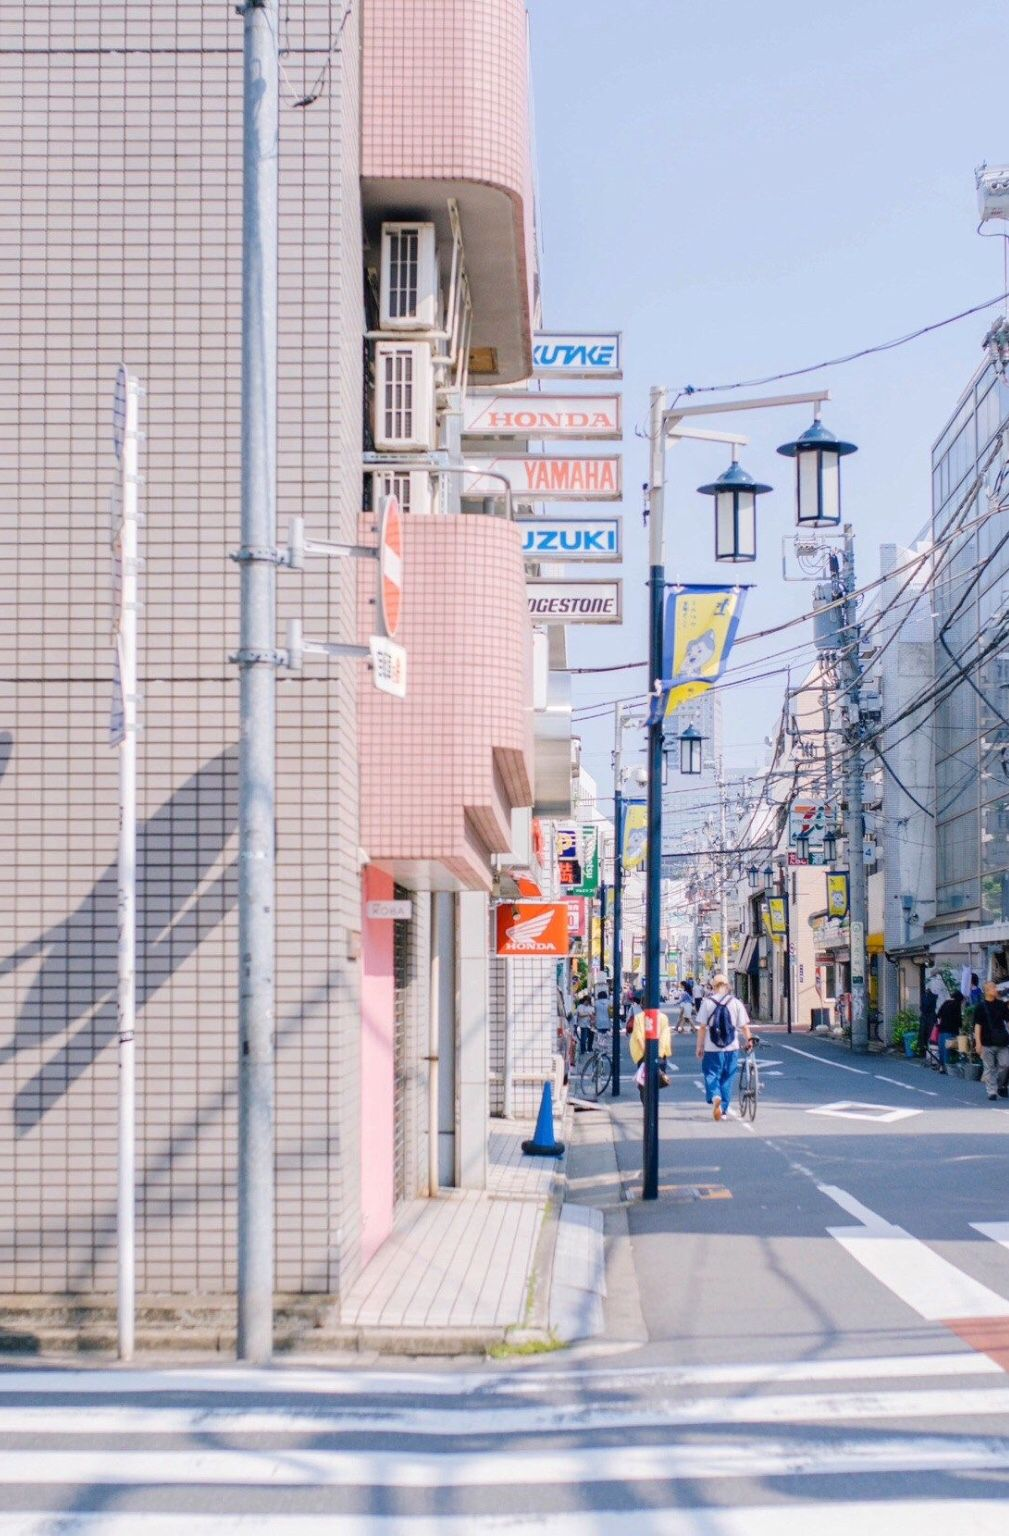 Original 1 2 Aesthetic Japan City Aesthetic Japan Photography